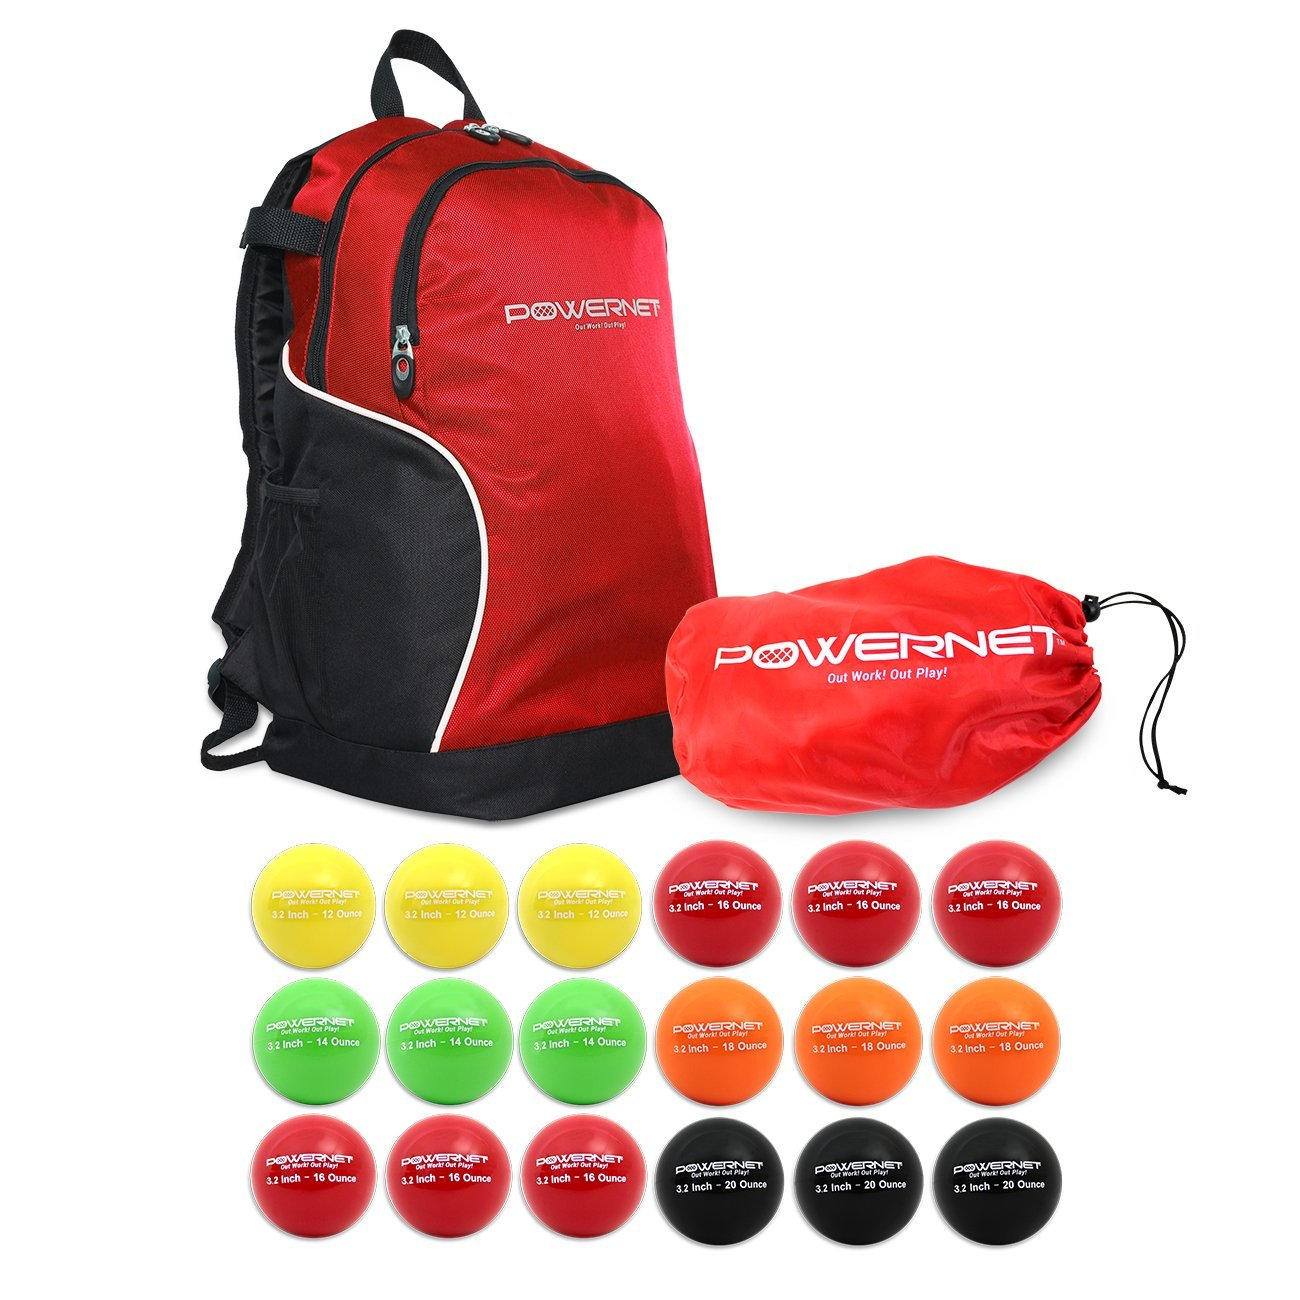 "PowerNet 3.2"" Weighted Hitting Batting Progressive Training Balls (18 Pack - Complete Set) Bundle with Baseball Backpack"